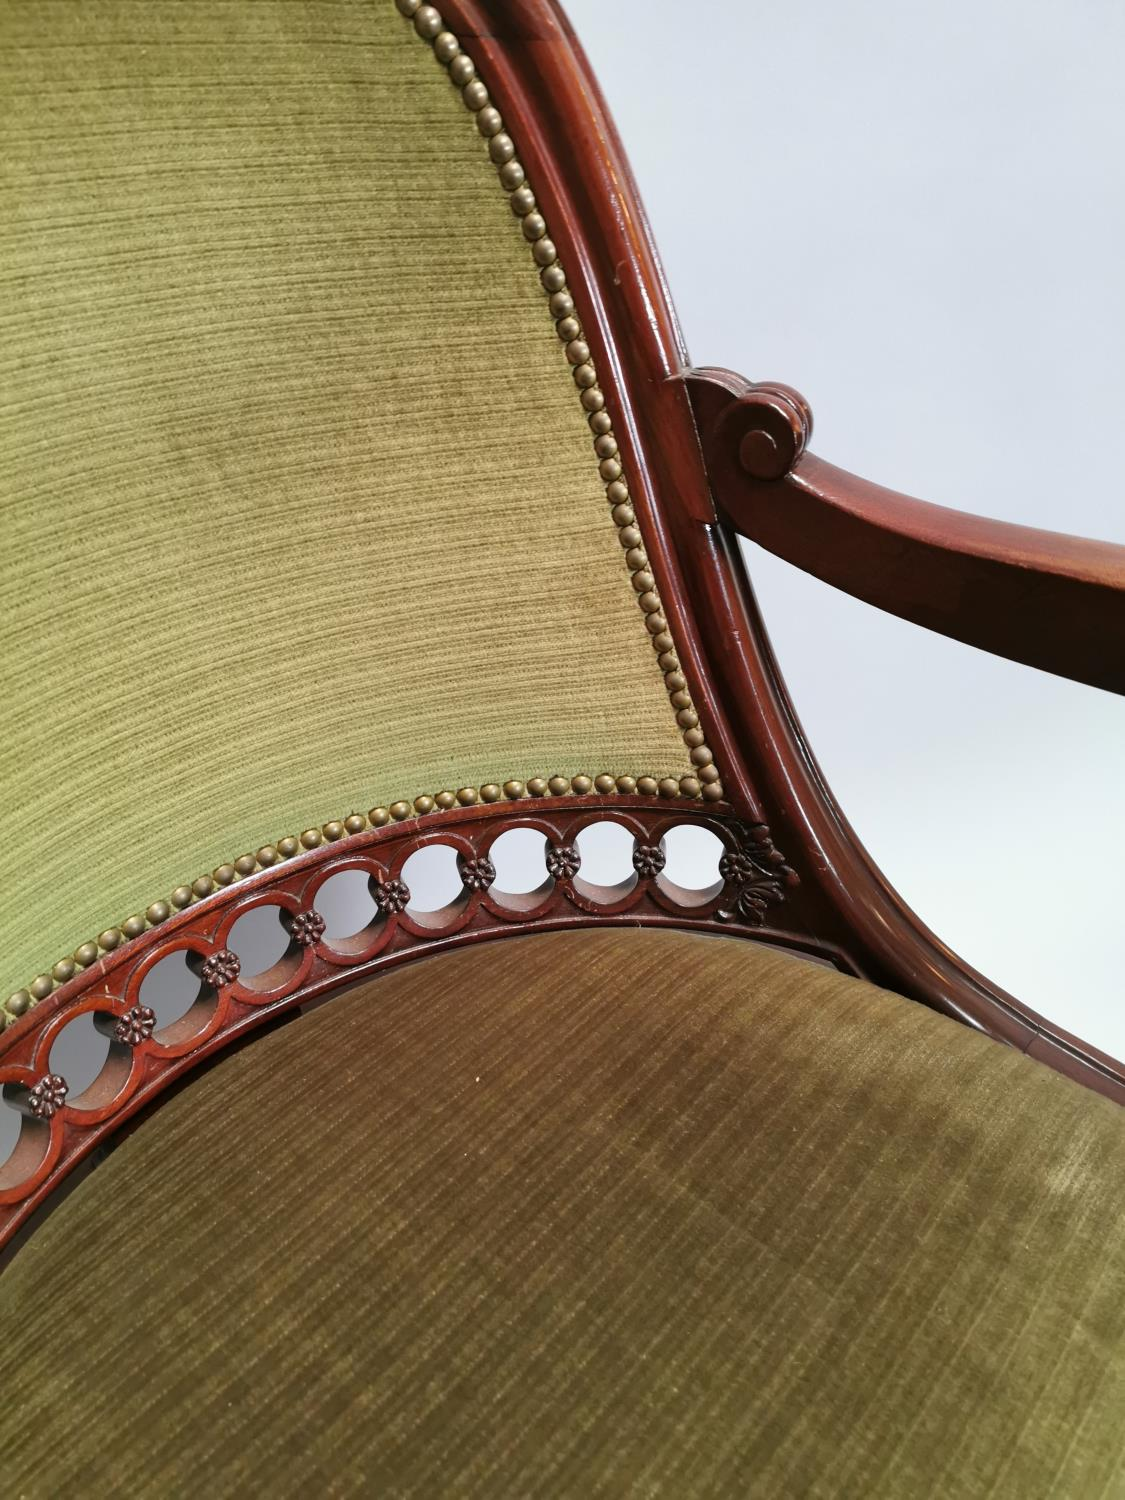 Upholstered mahogany desk chair - Image 4 of 8